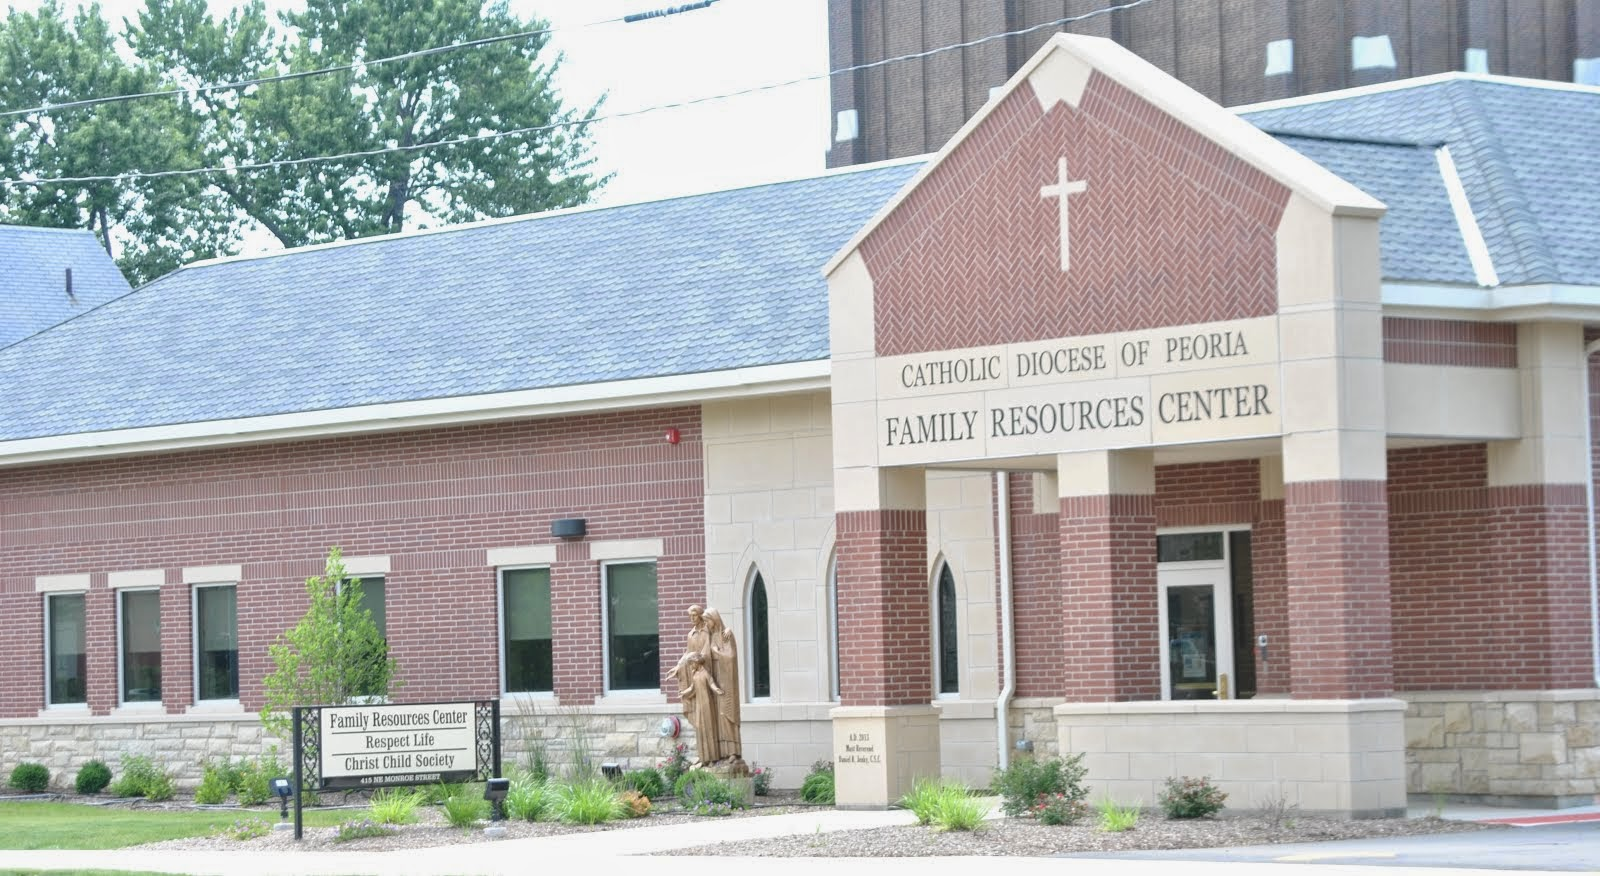 Family Resources Ctr